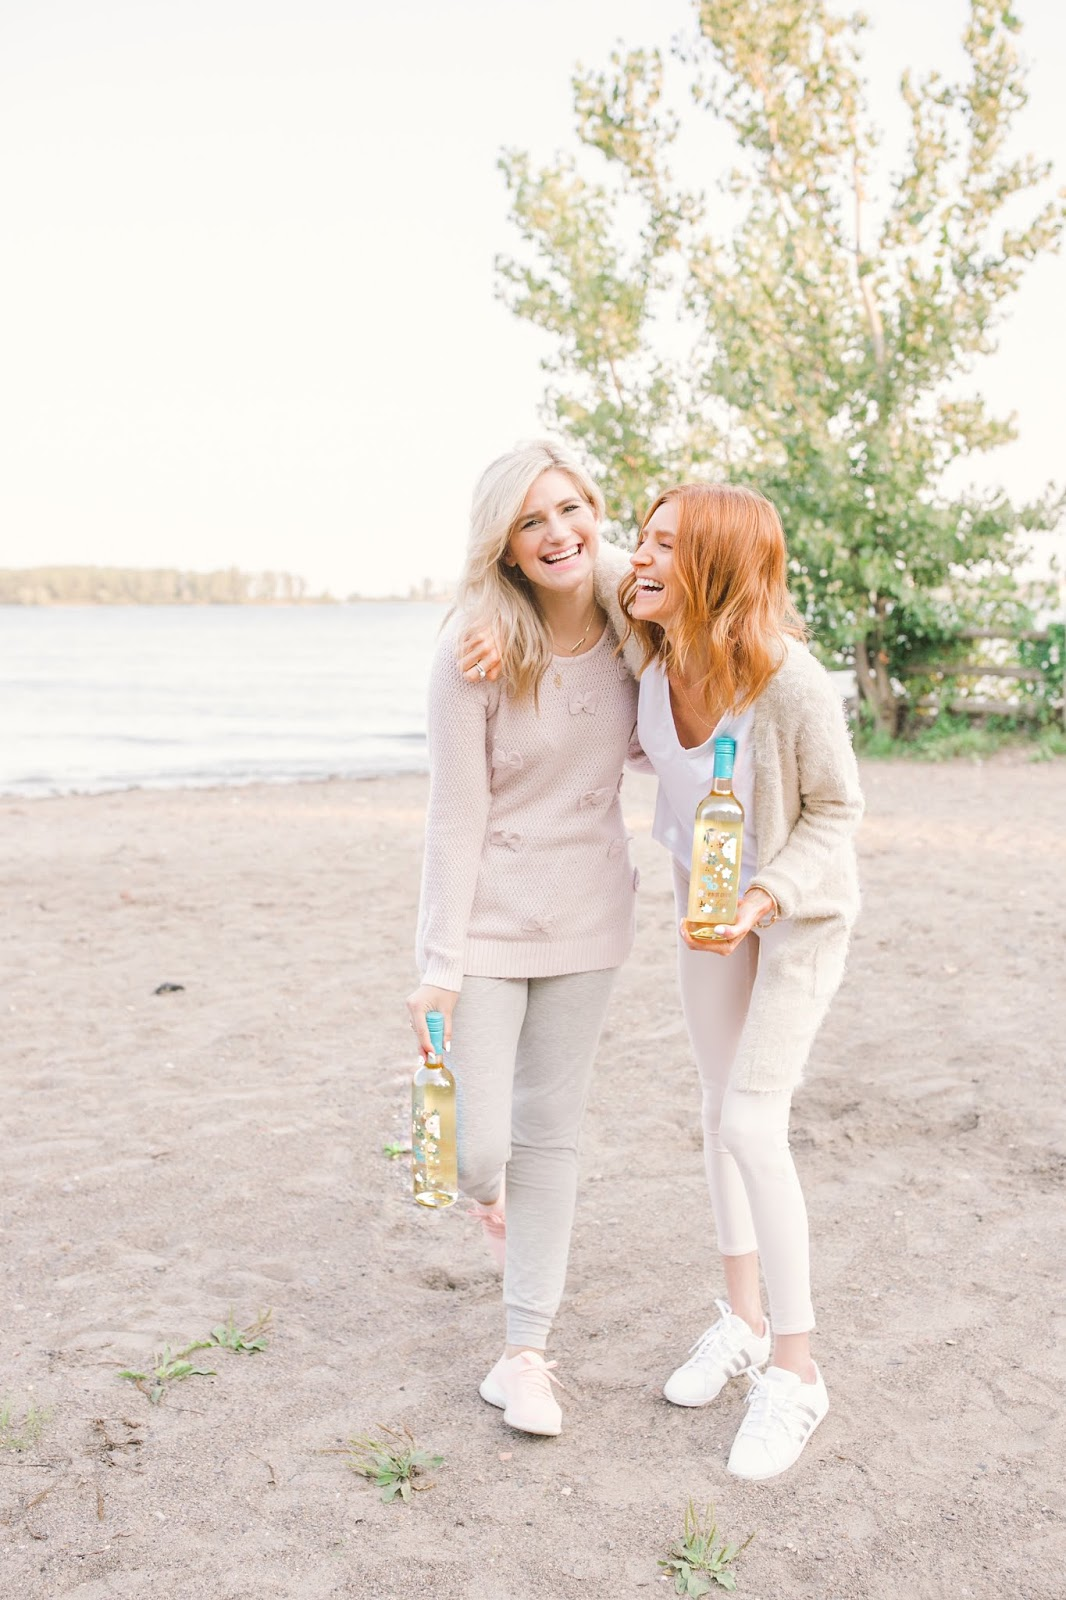 How to Have the Perfect Self-Care Day with XOXO Wines - Colourful, pink beach picnic with bestie.